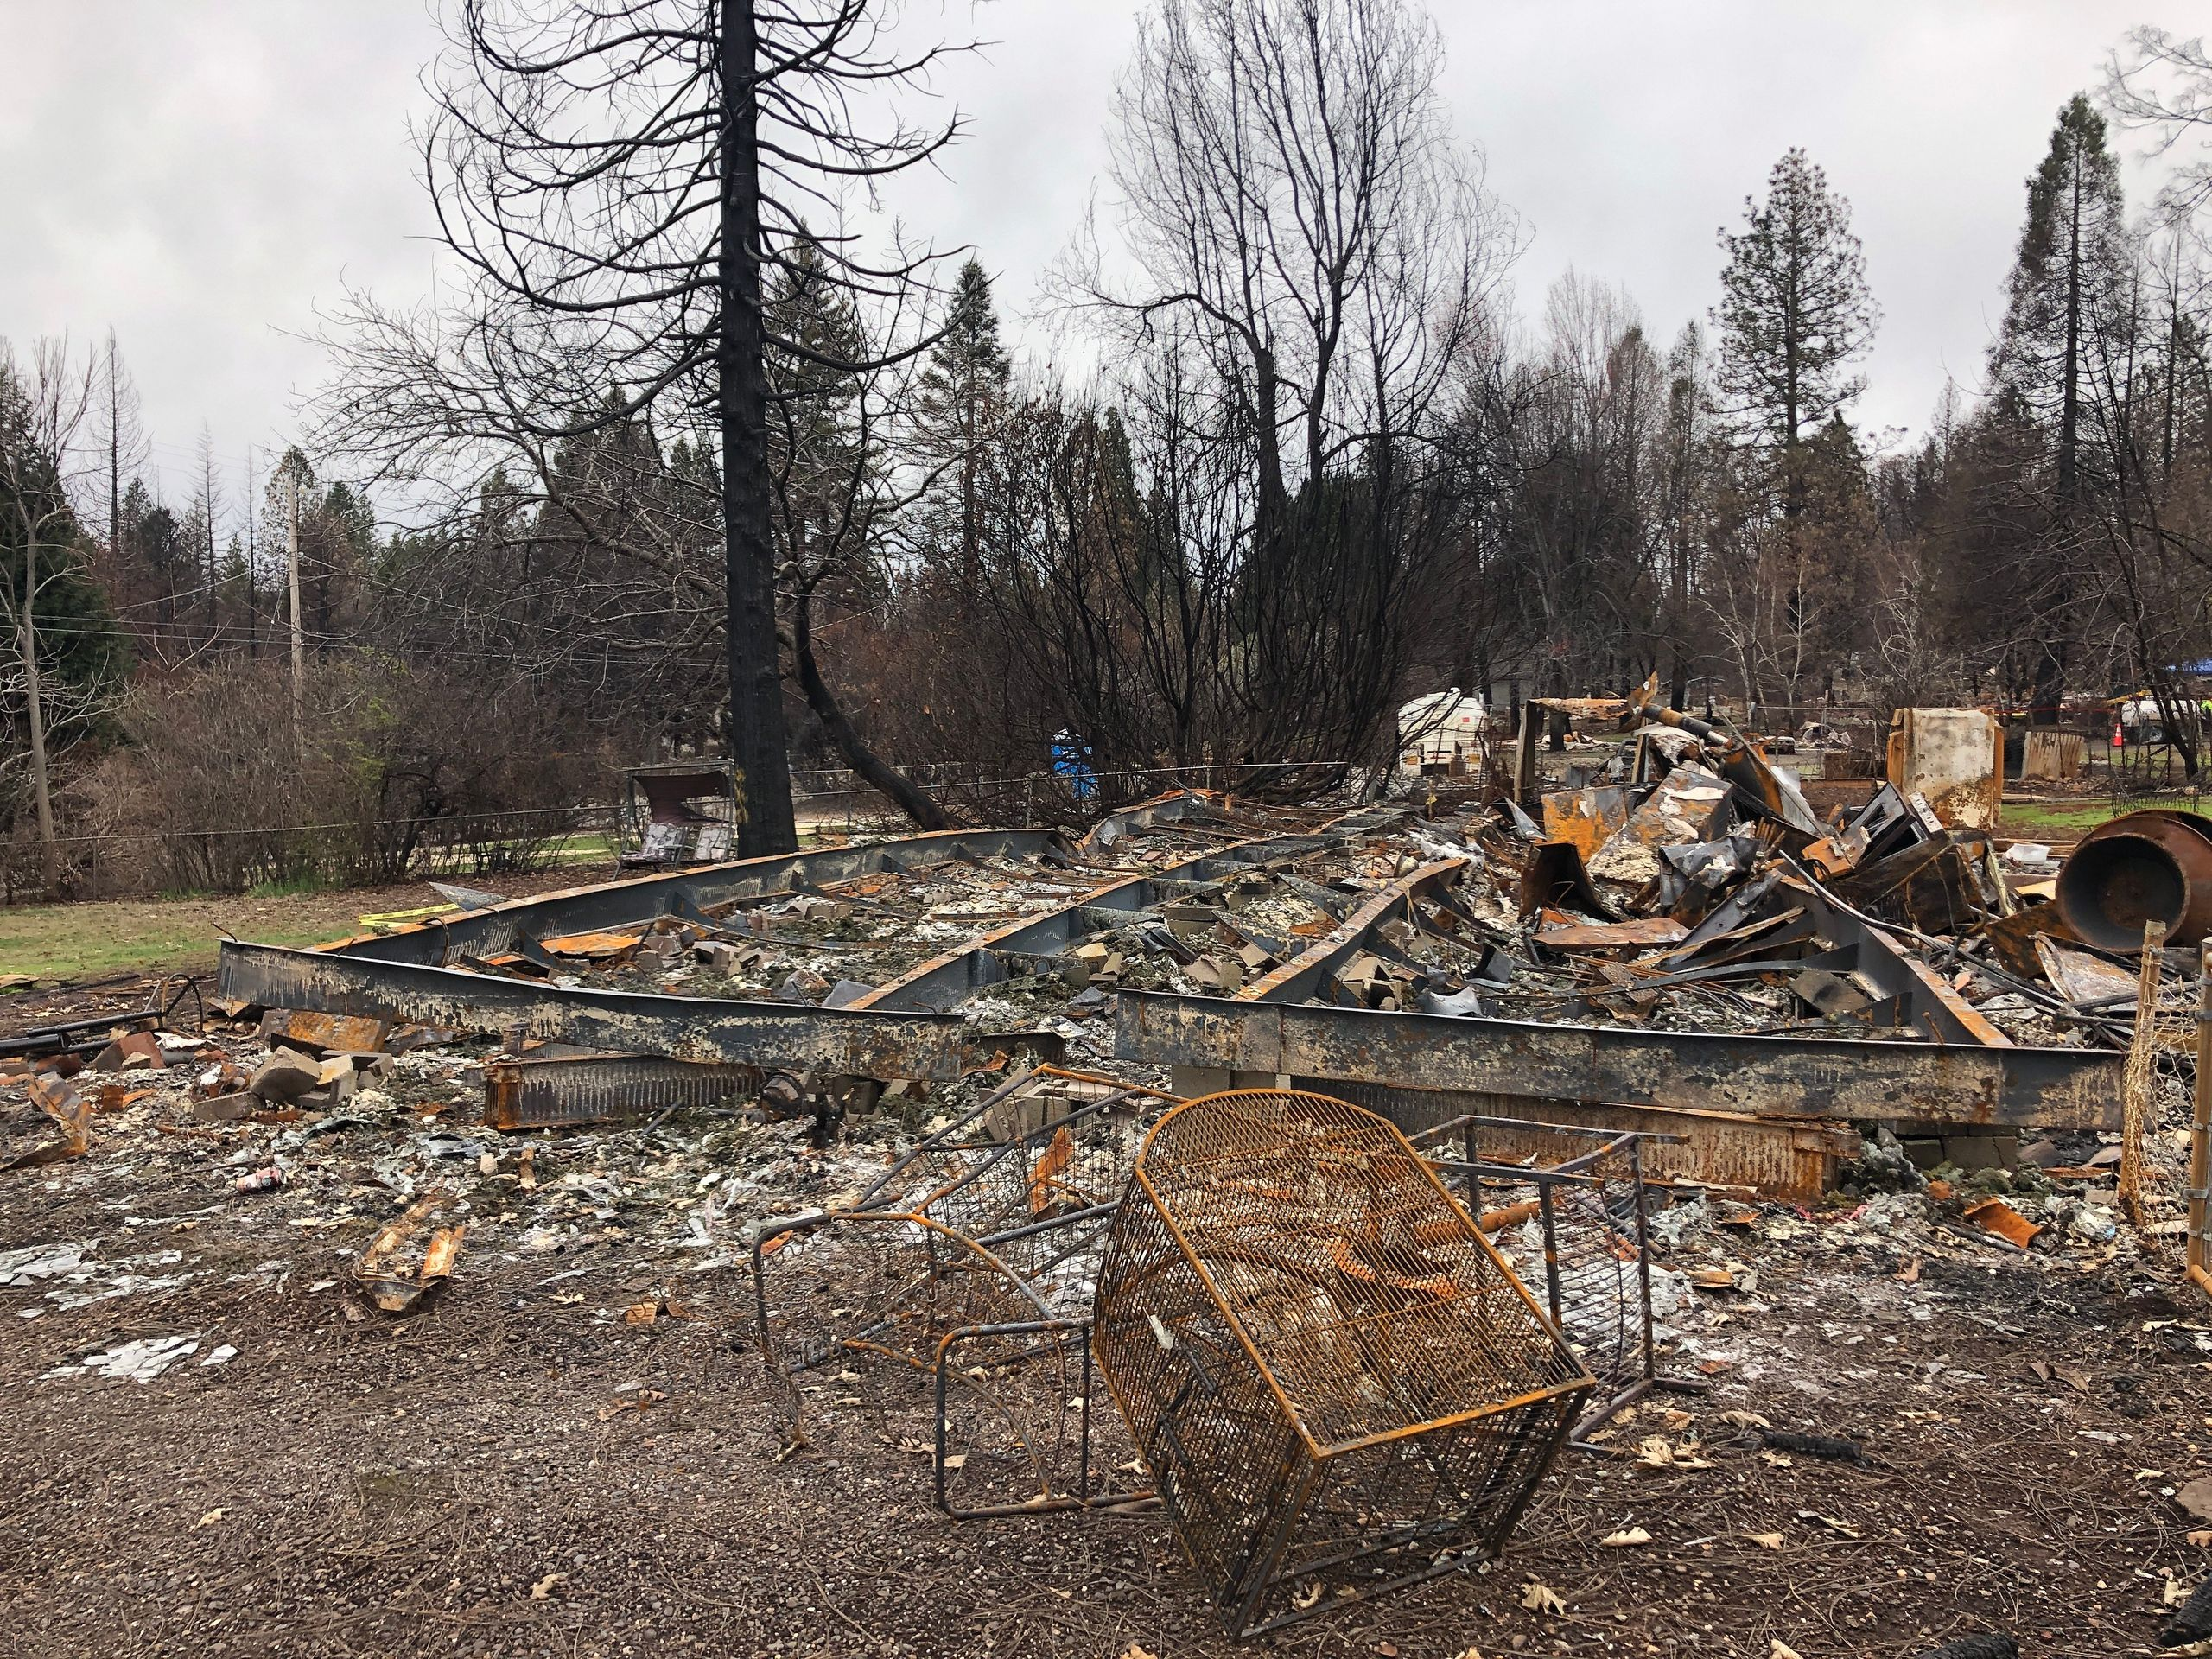 What remains of the Alaways' house after the Camp fire tore through it. — Paradise, Feb. 12